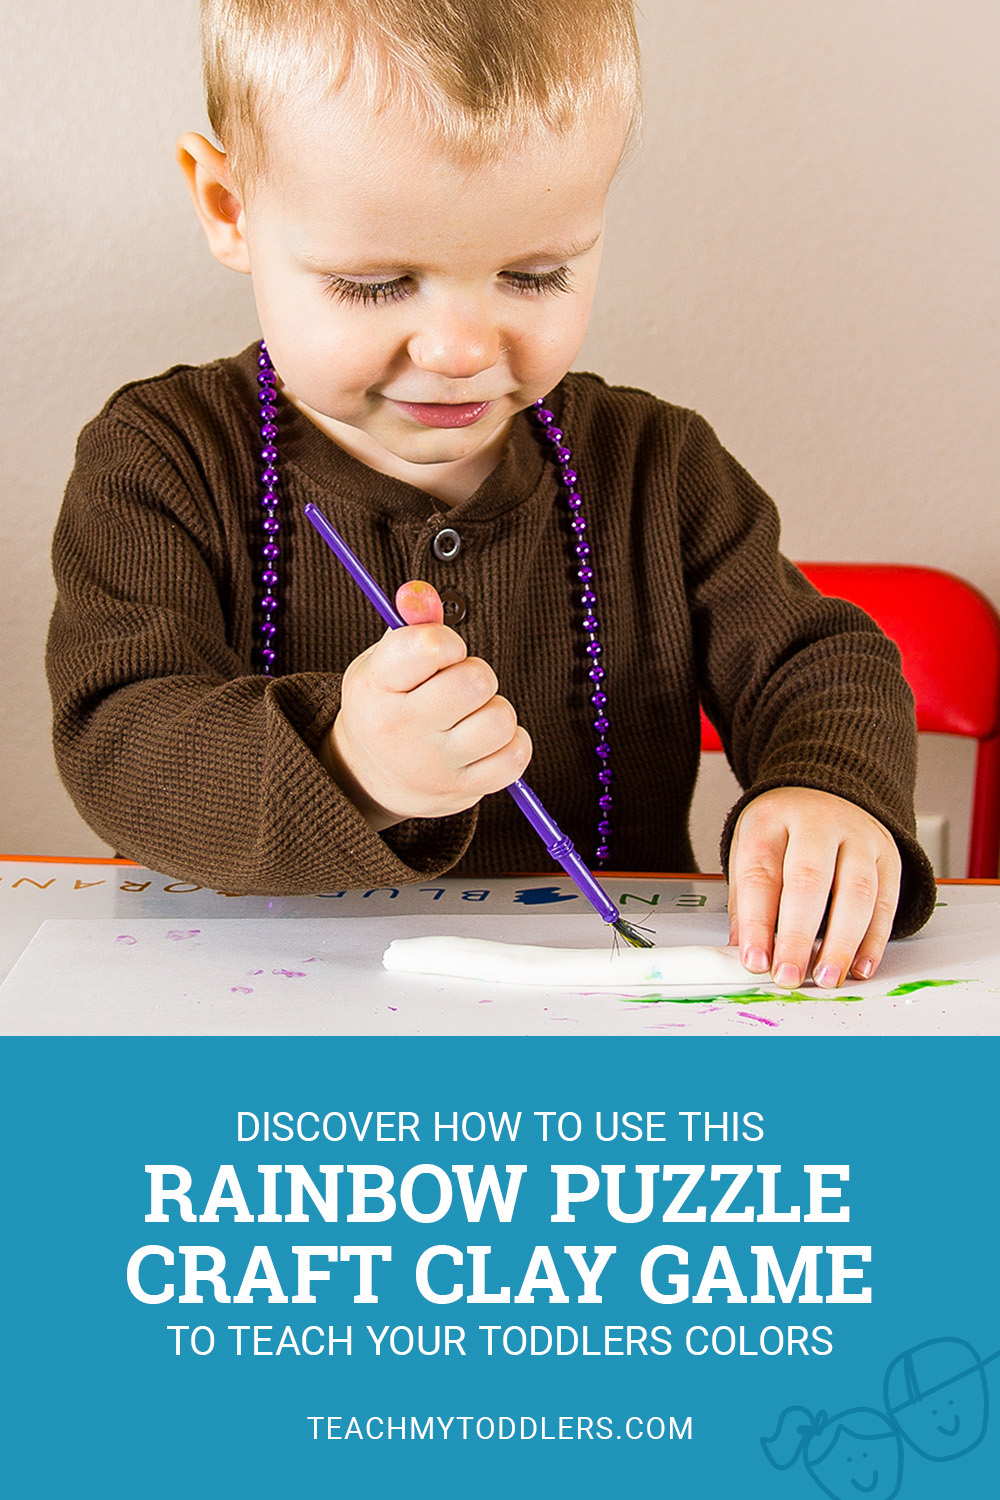 Discover how to use this rainbow puzzle crazy clay game to teach your toddlers colors